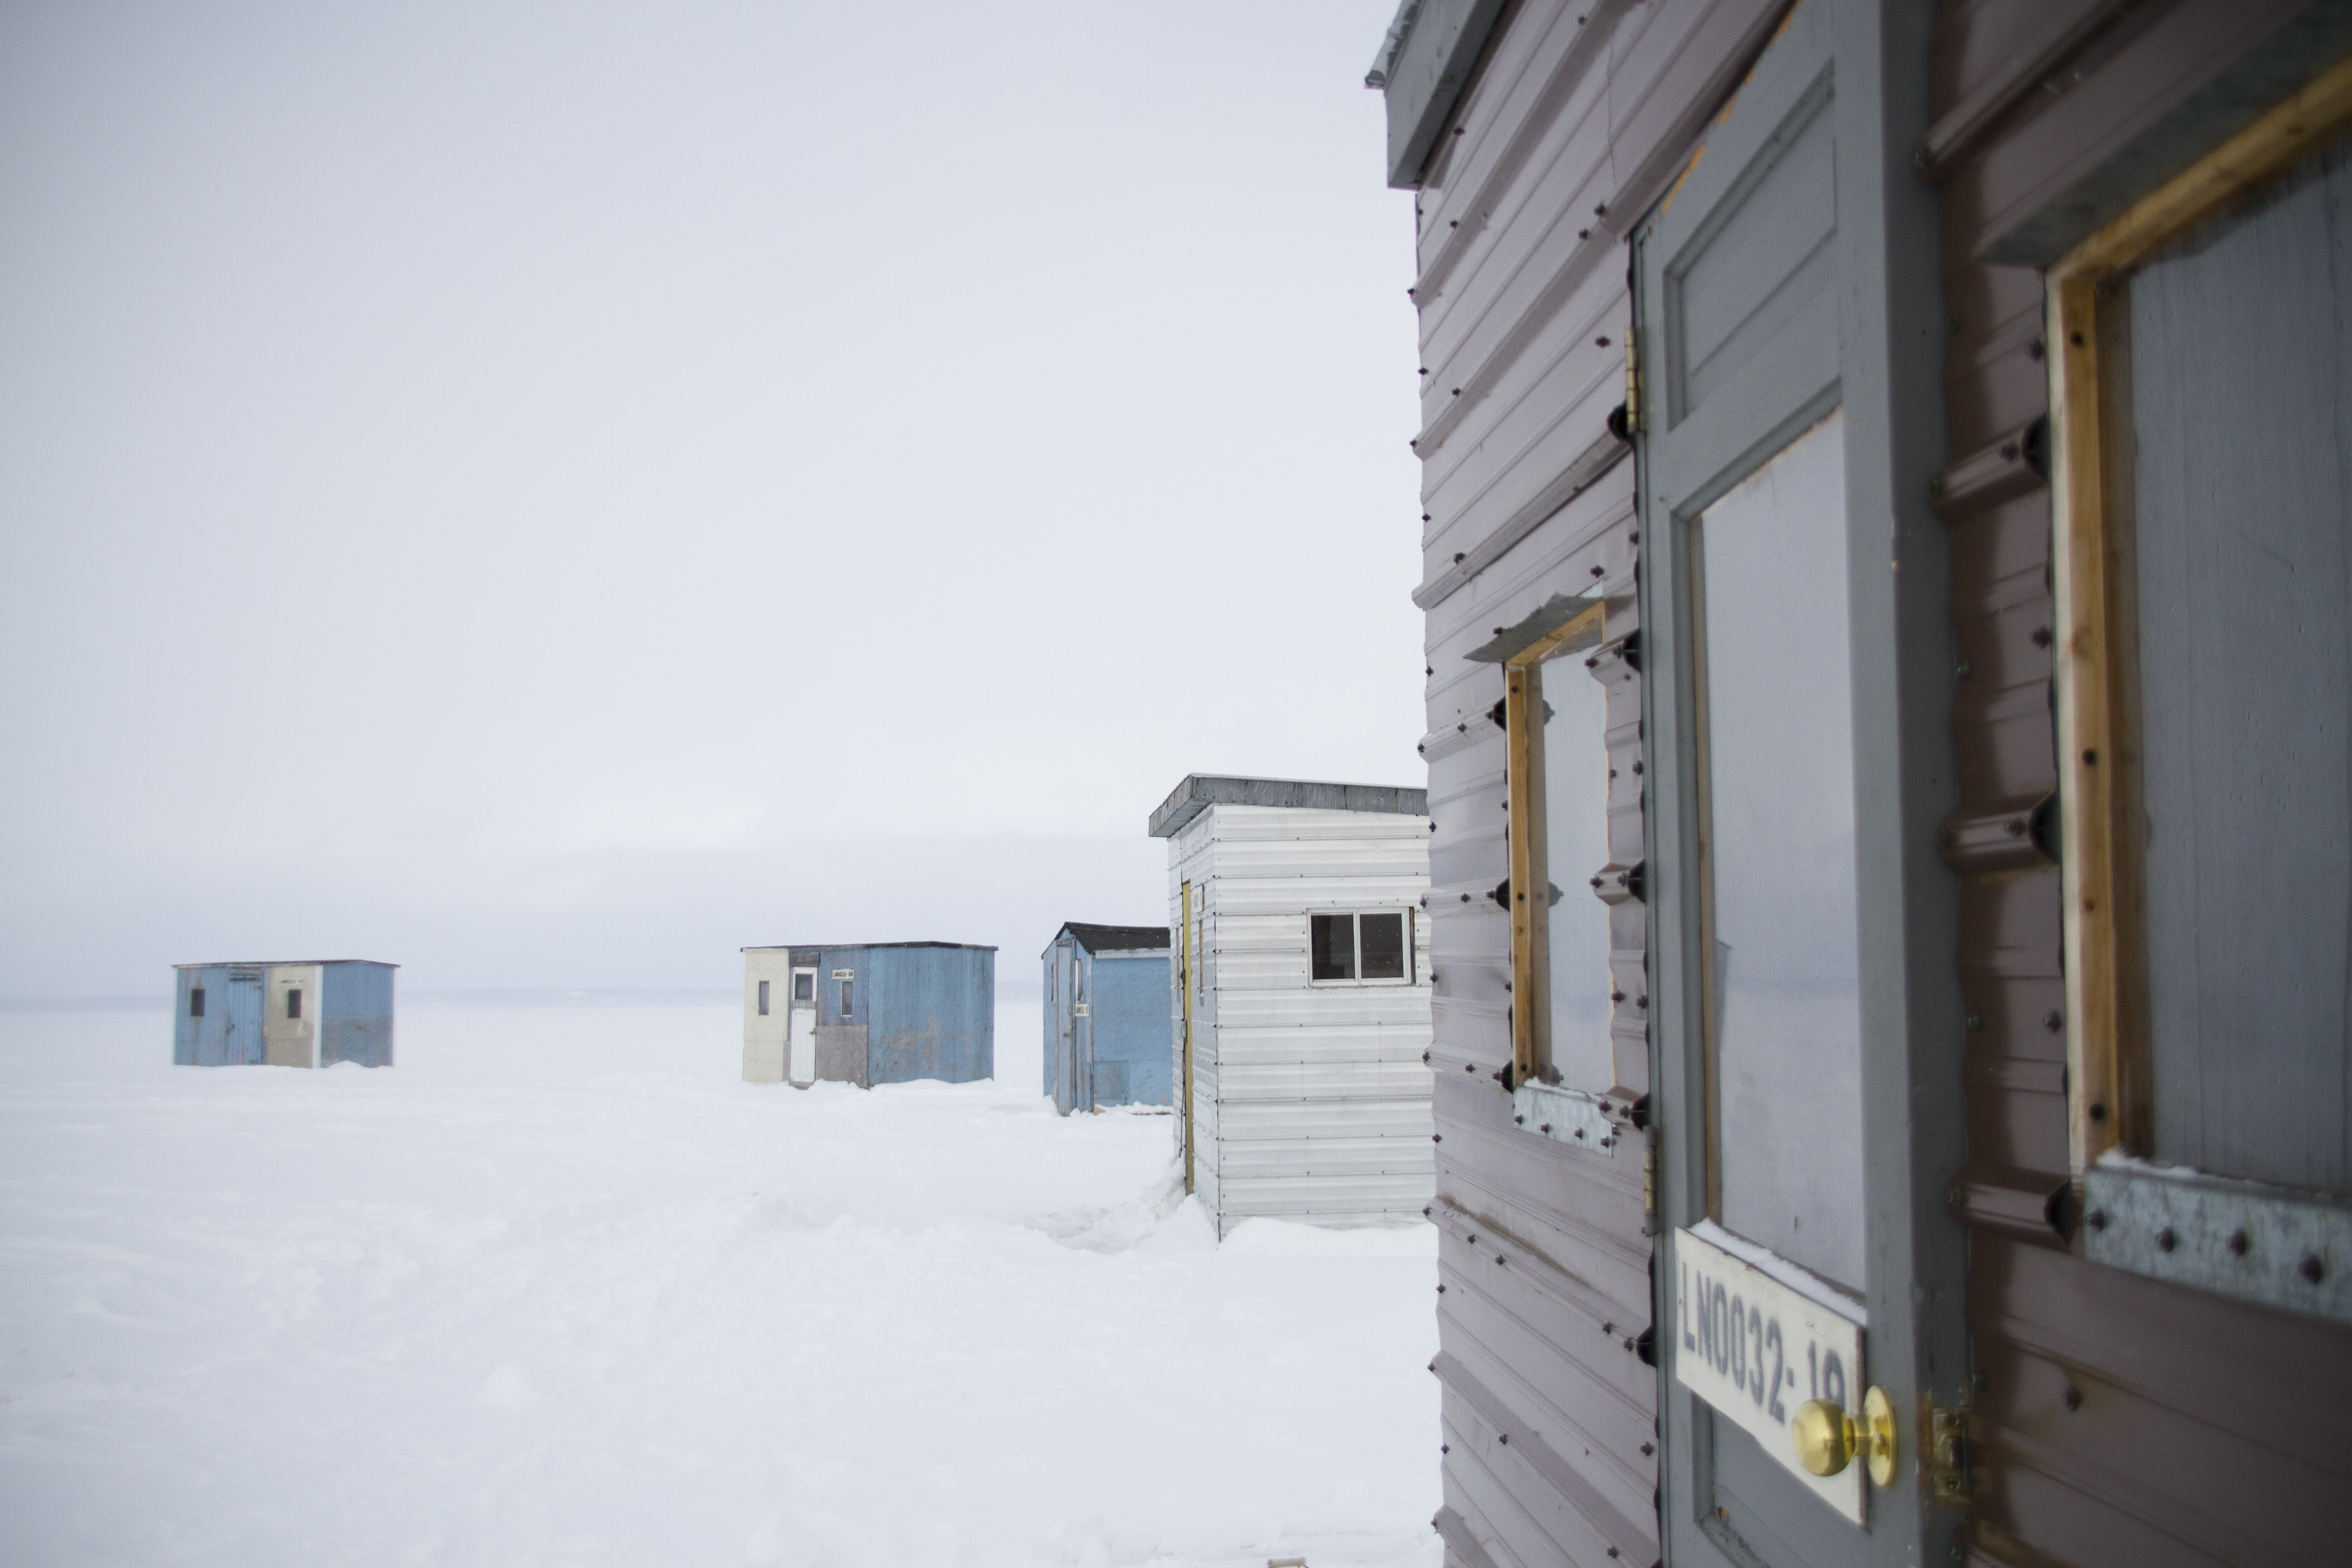 A photo of ice shacks on Lake Nipissing